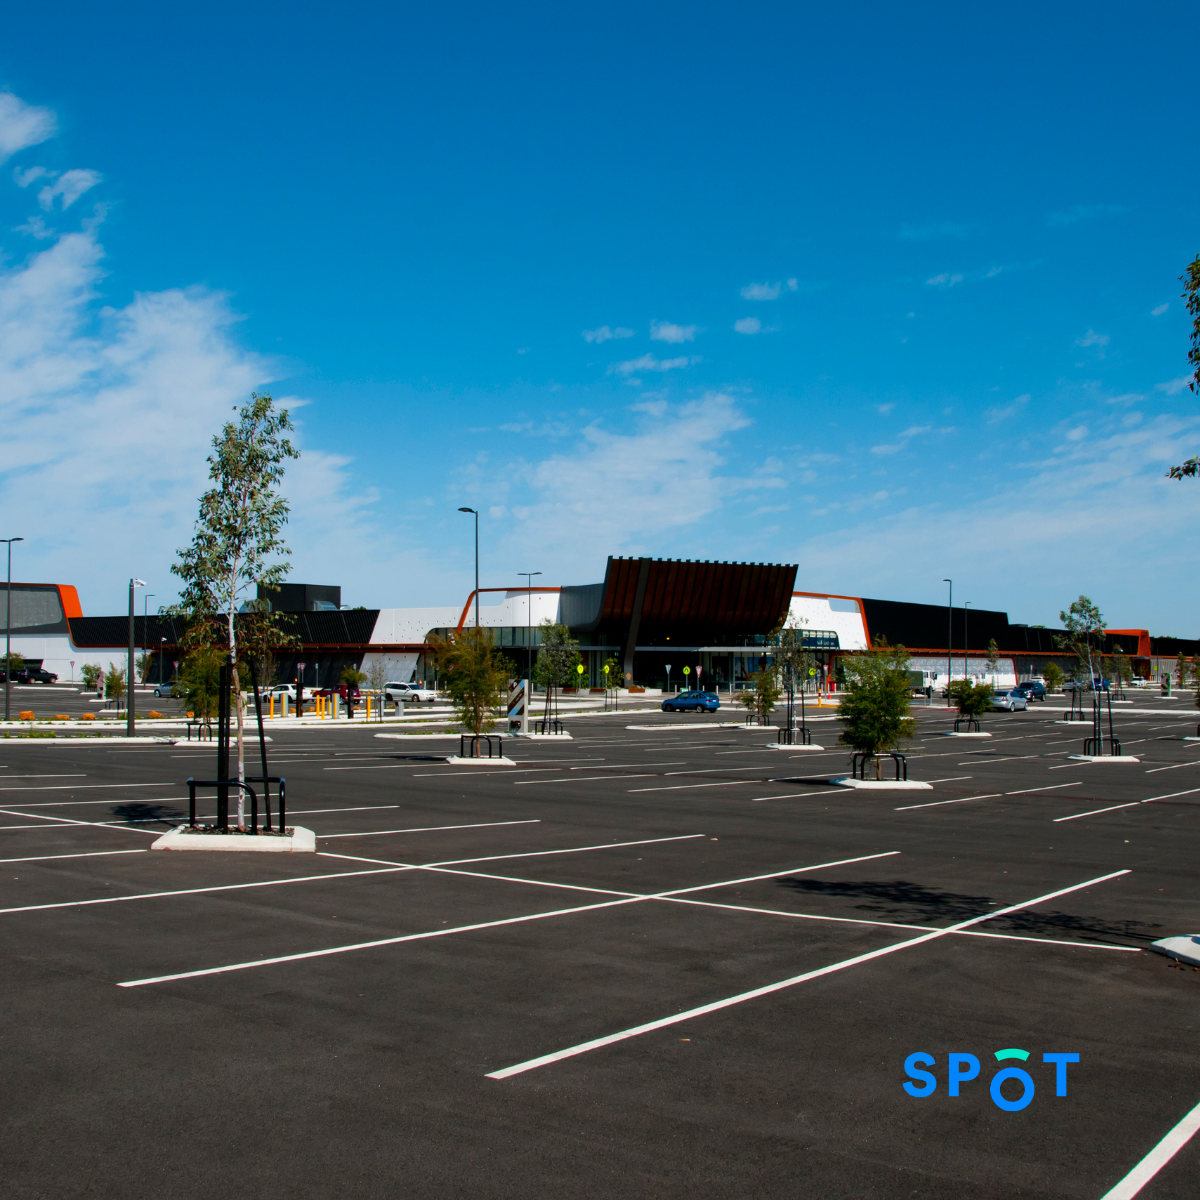 An empty parking lot, to show how COVID-19 impacted the parking industry